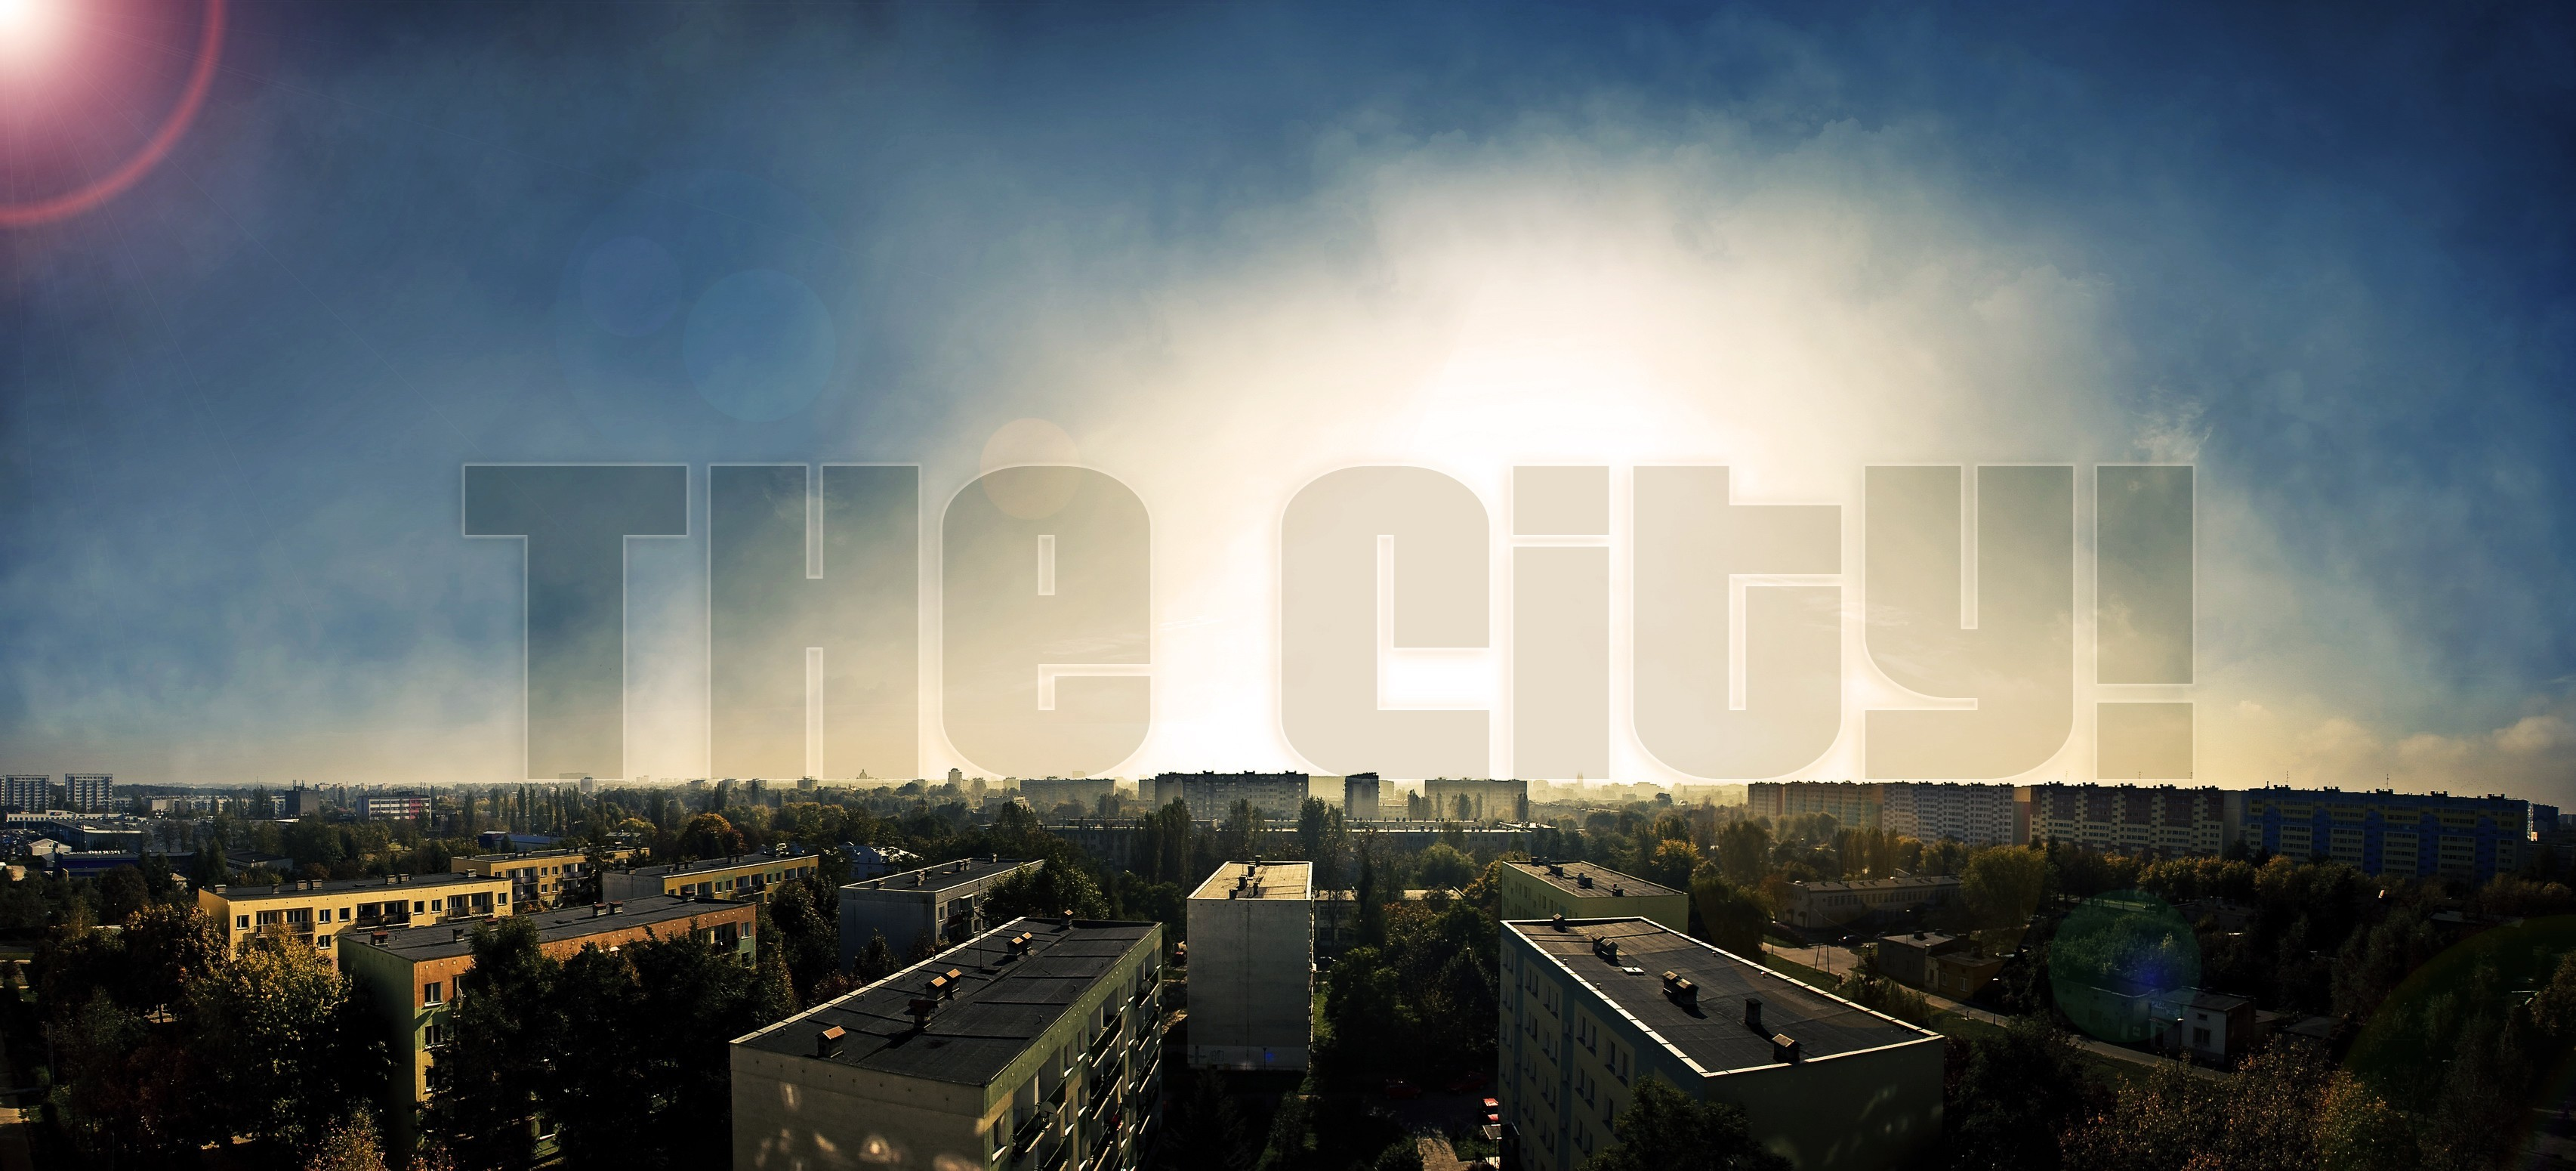 cityscapes skylines dubstep Outback HD Wallpaper